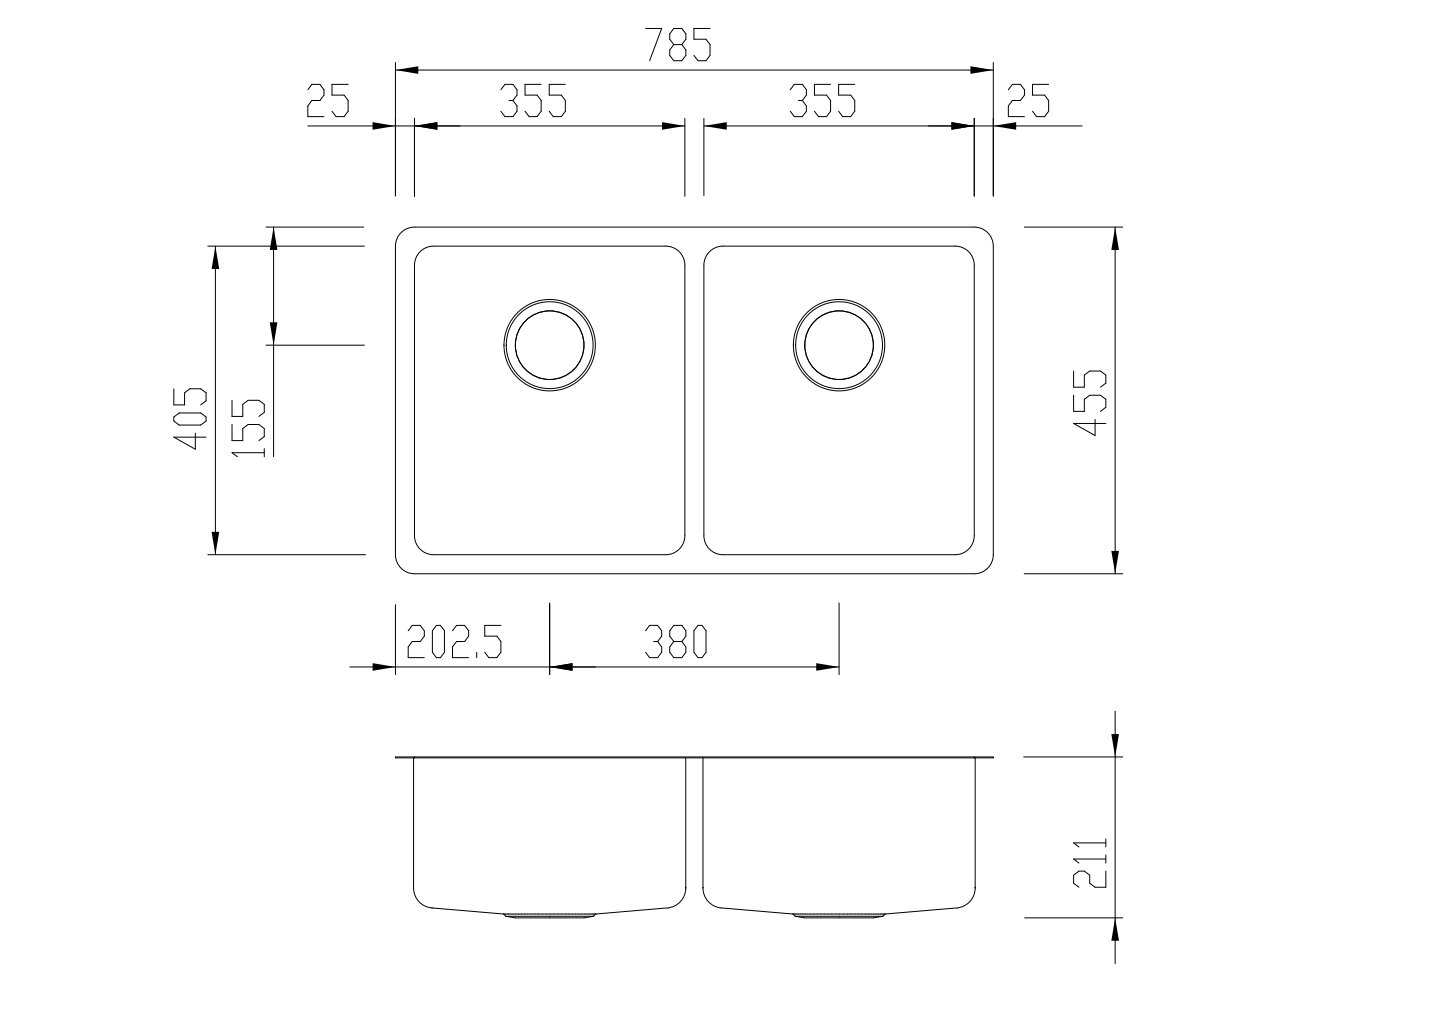 hight resolution of double sink diagram